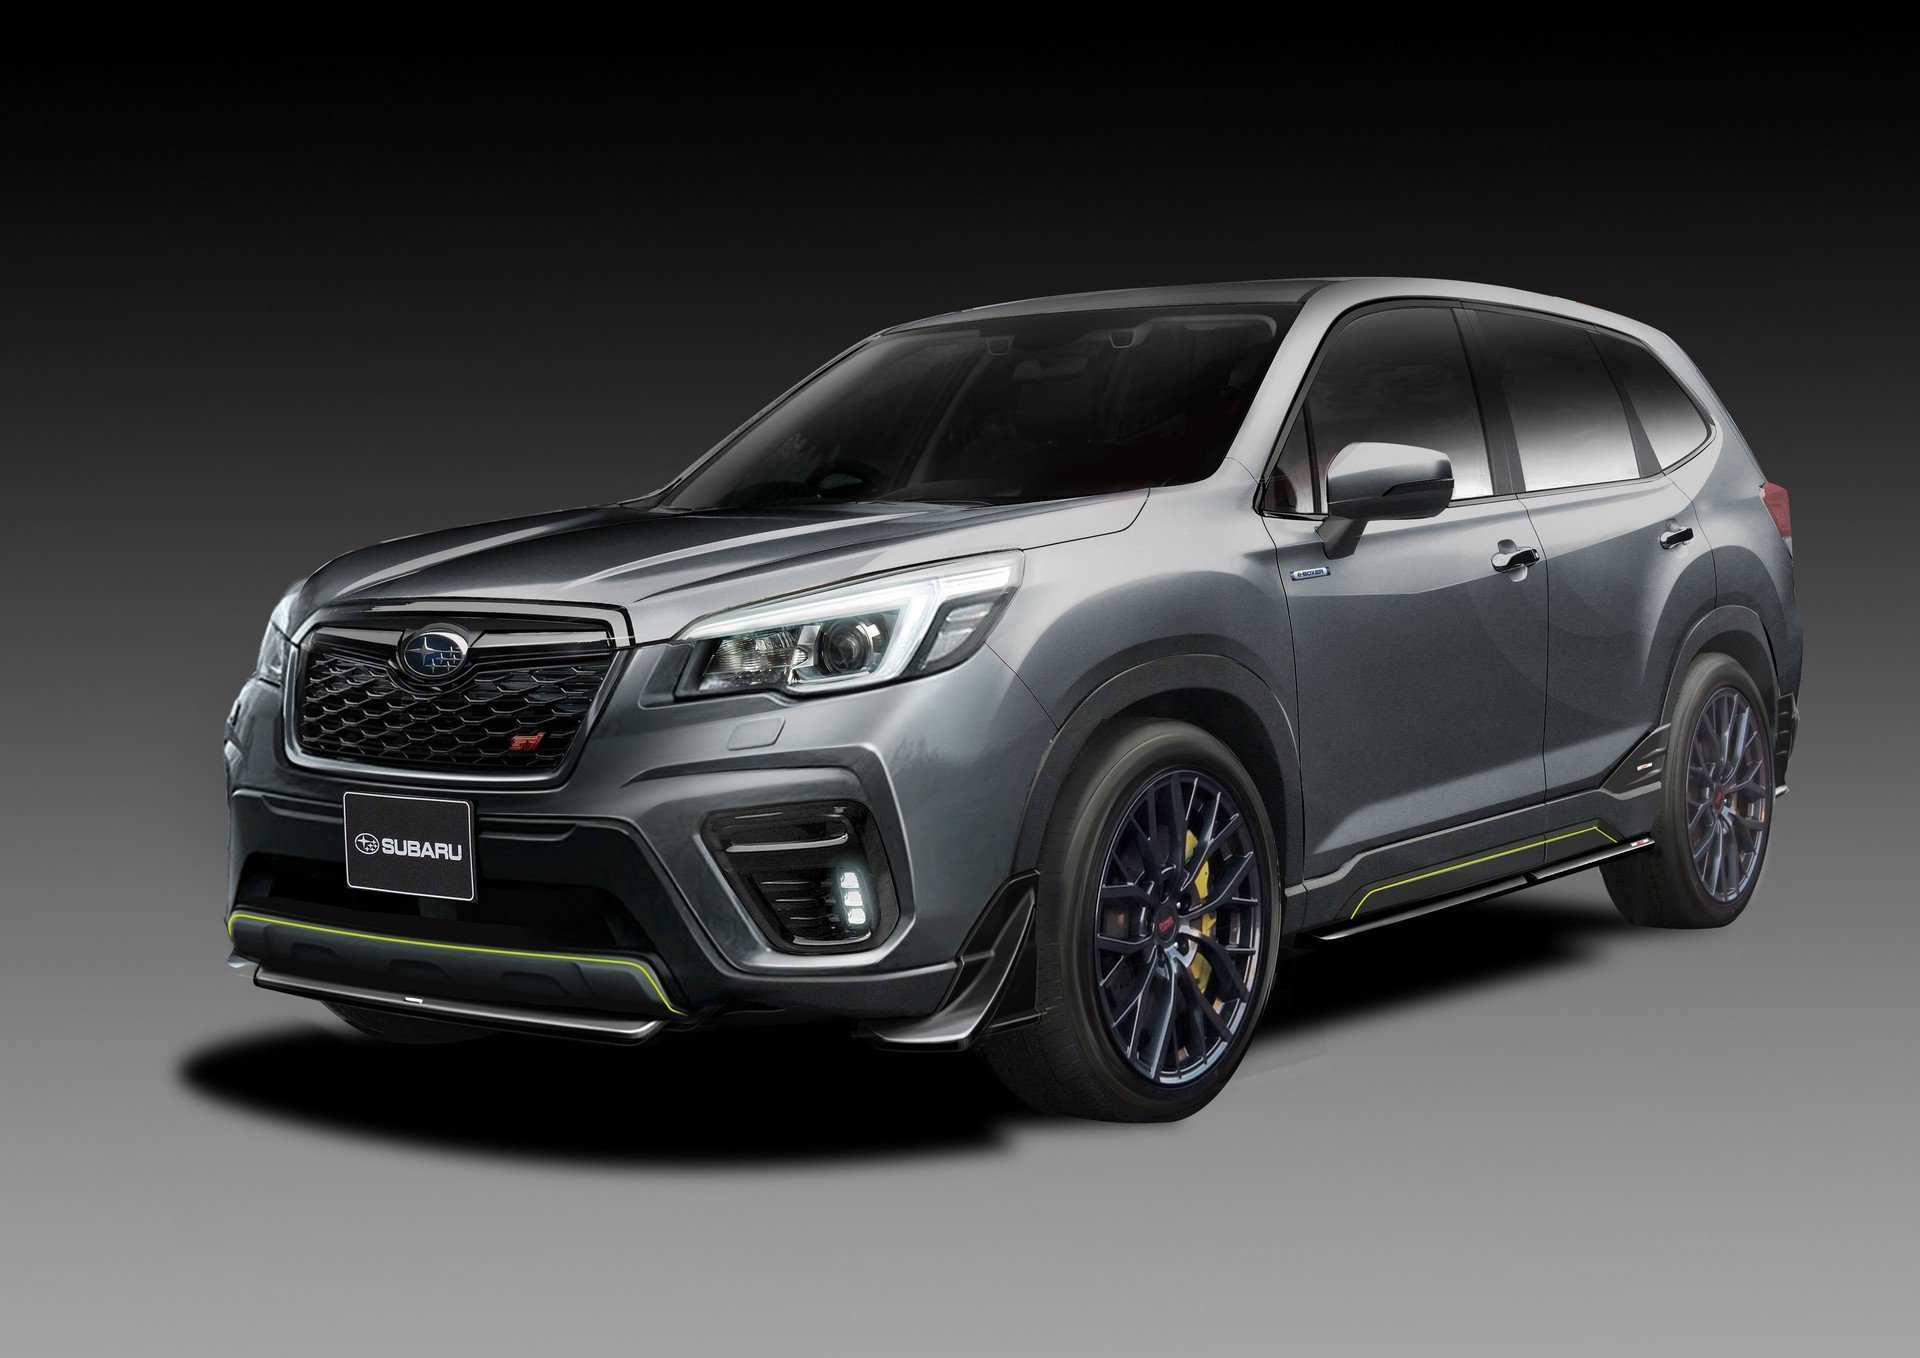 88 The Best Subaru Forester 2020 Overview